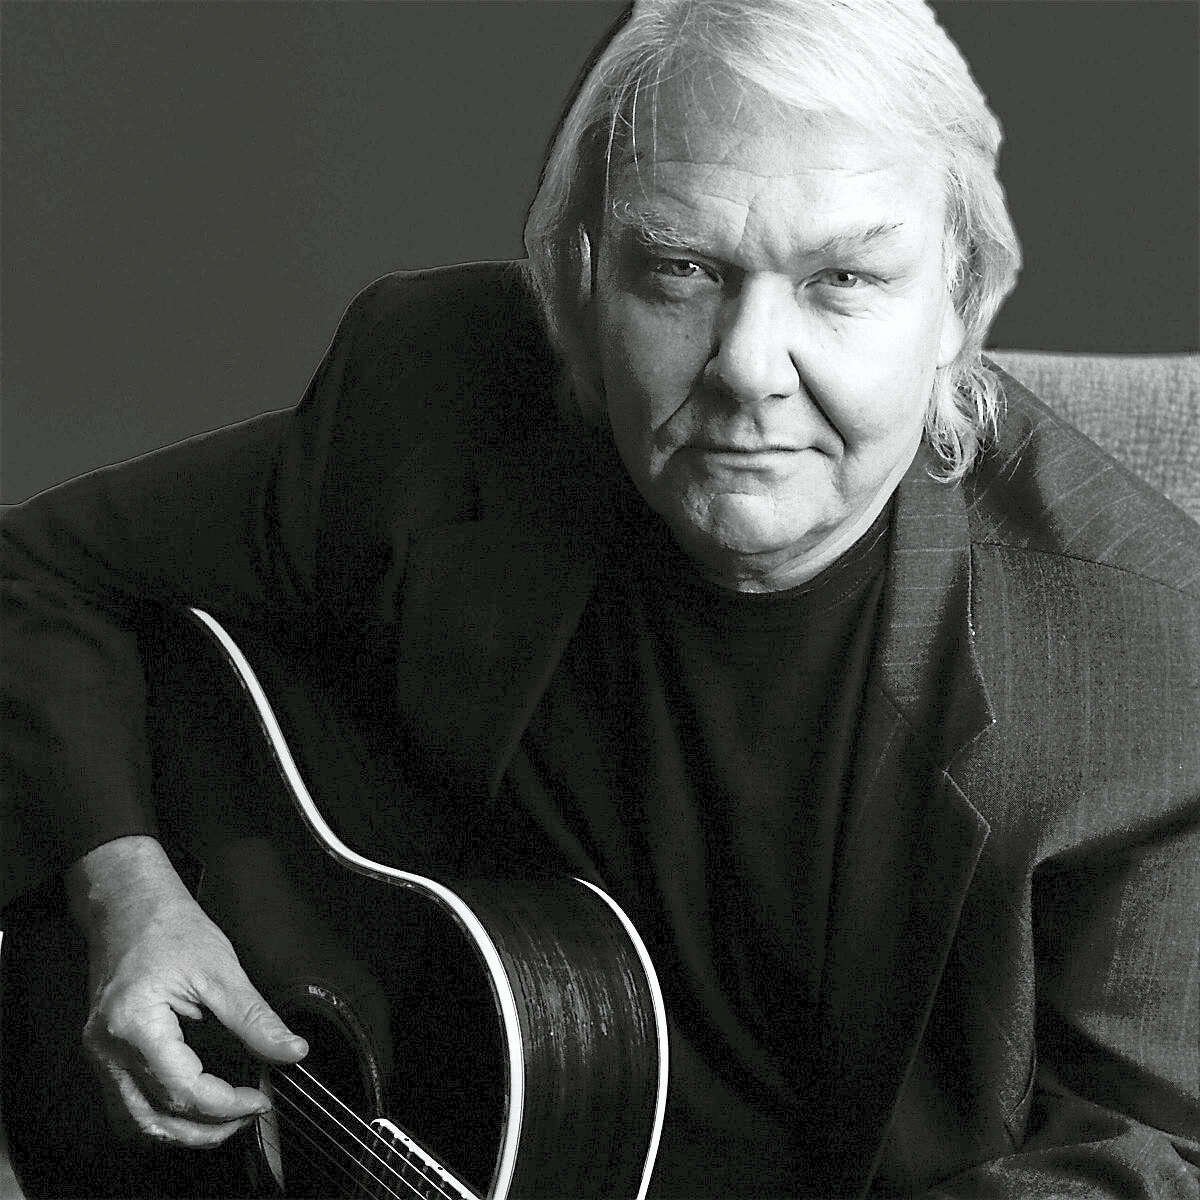 Contributed photoAward-winning singer, songwriter and guitarist Big Al Anderson will return to the Infinity Music Hall in Norfolk on Friday Dec. 30.